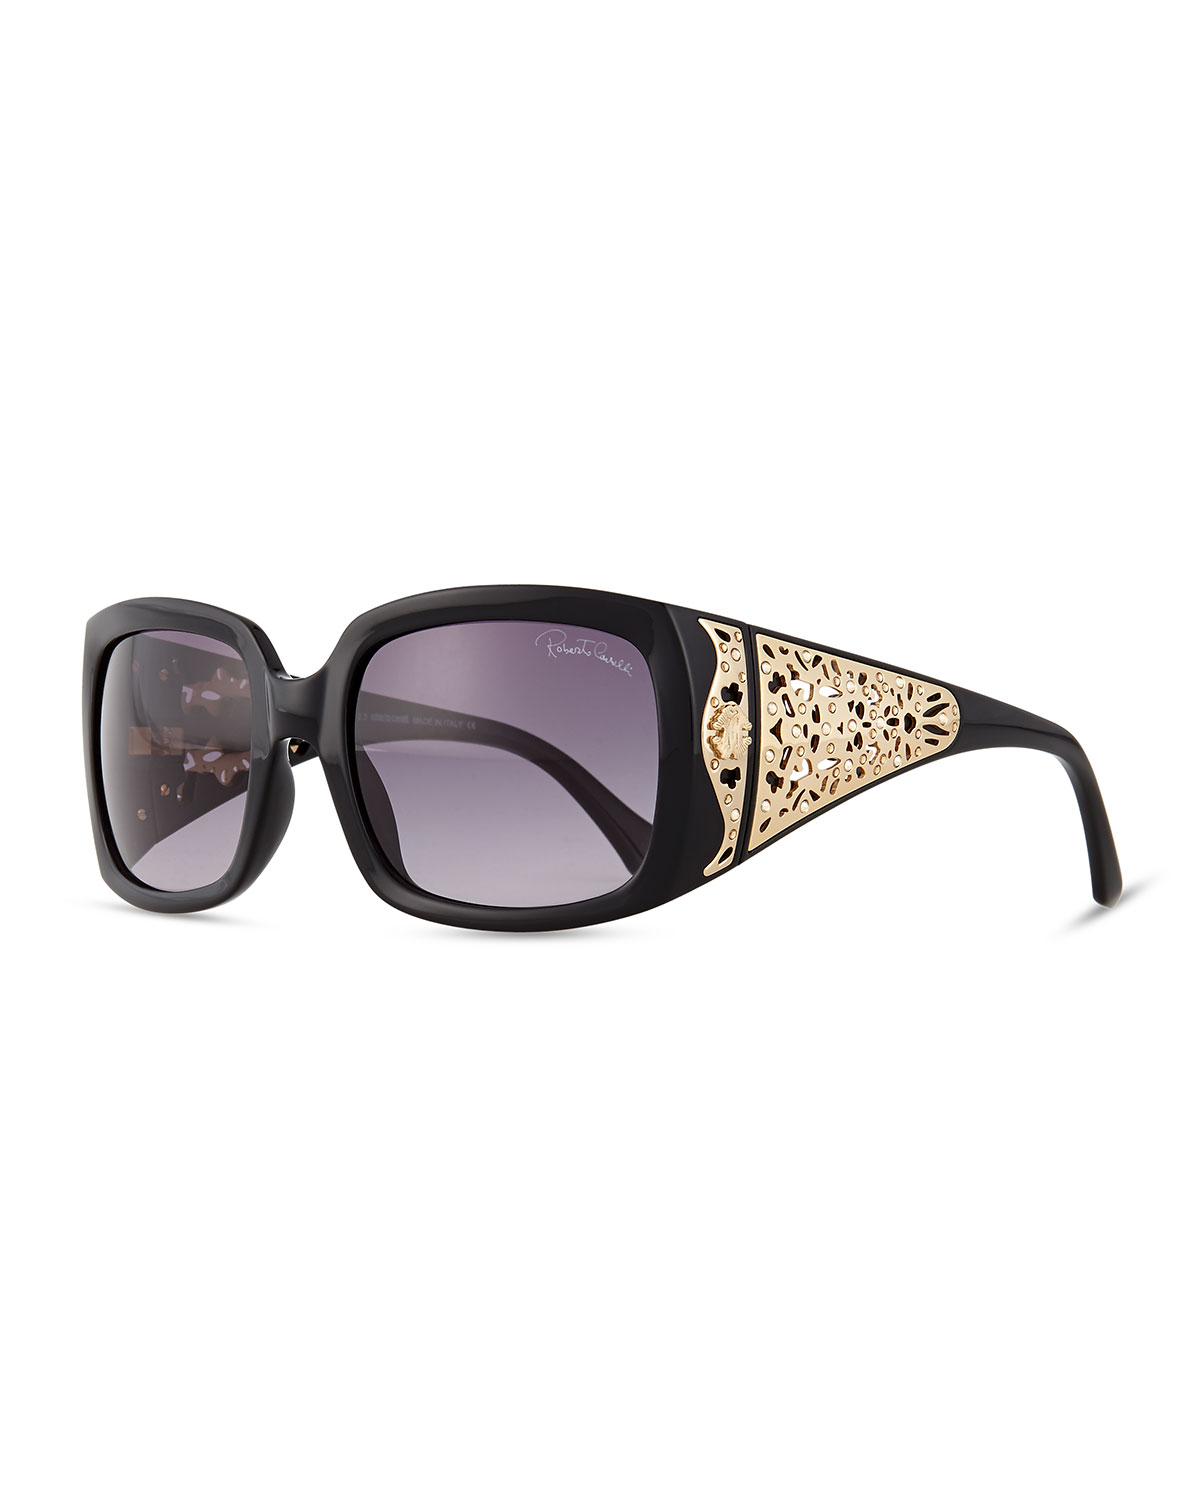 roberto cavalli injected square sunglasses w laser cut